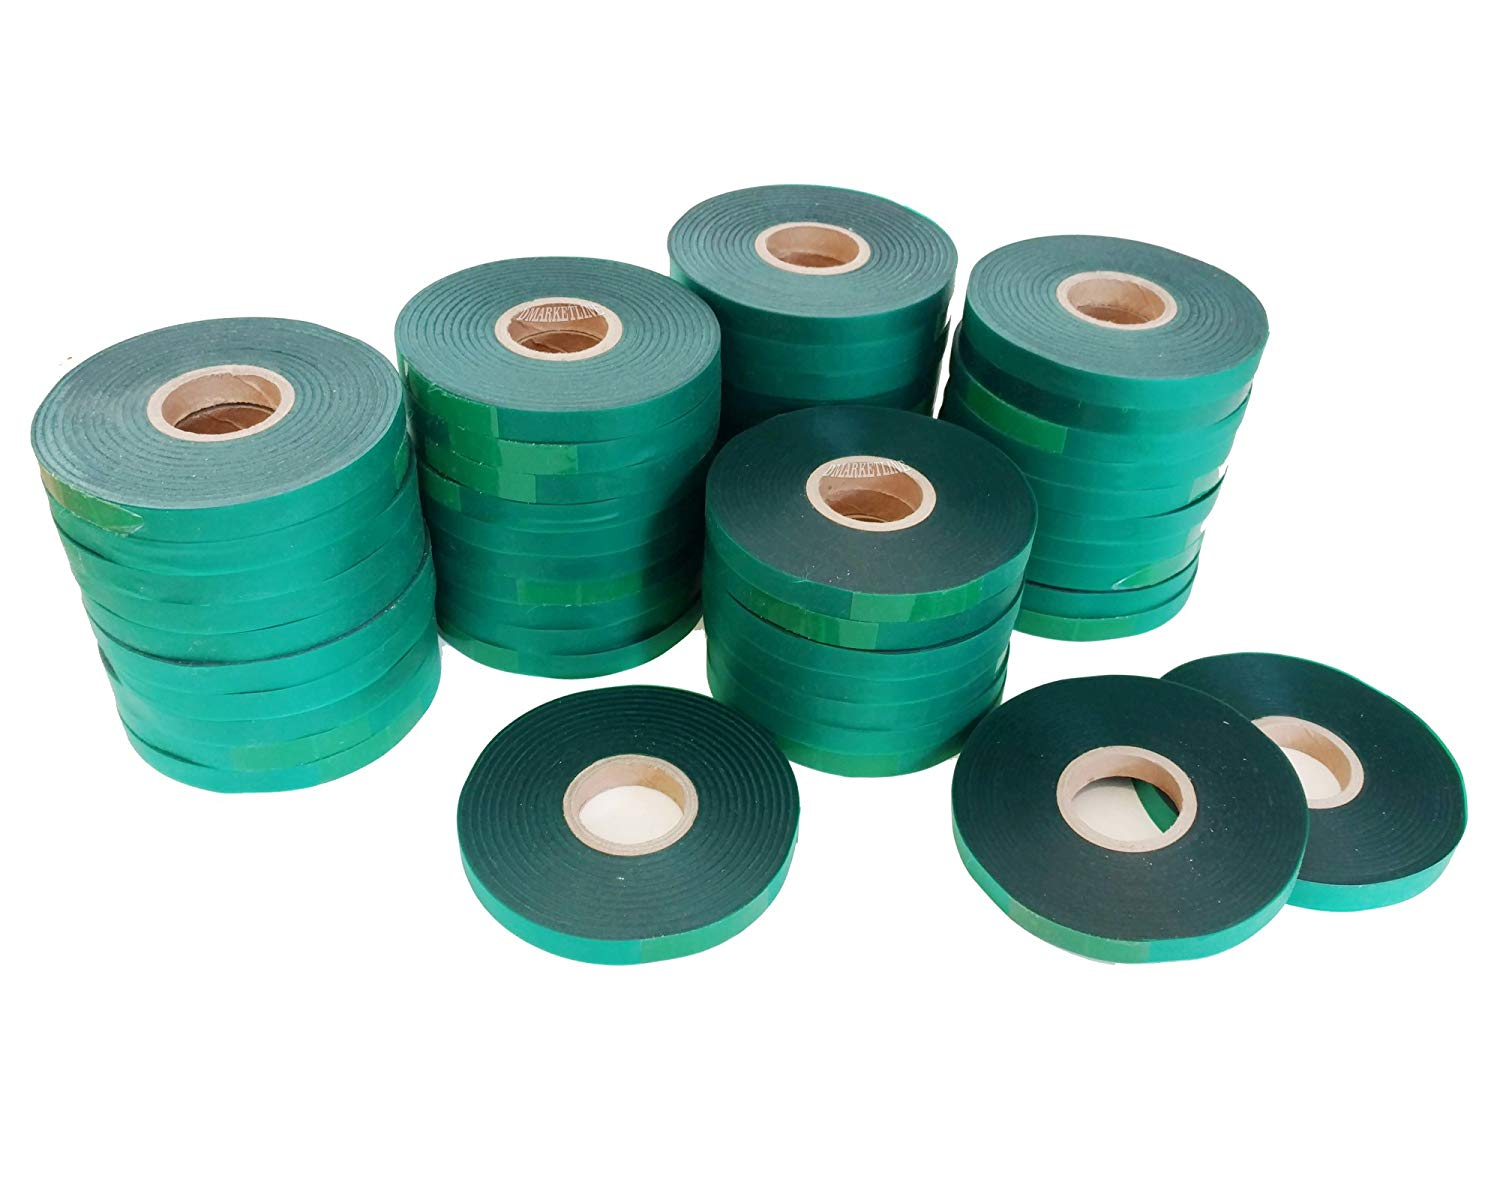 "50 Rolls-4mil each 300 FEET x 1/2"" Stretchy strong long lasting Tie Quality Tape Plant Ribbon Garden Vinyl sturdy Liston Help you guide cuttings branches Dmarketline"